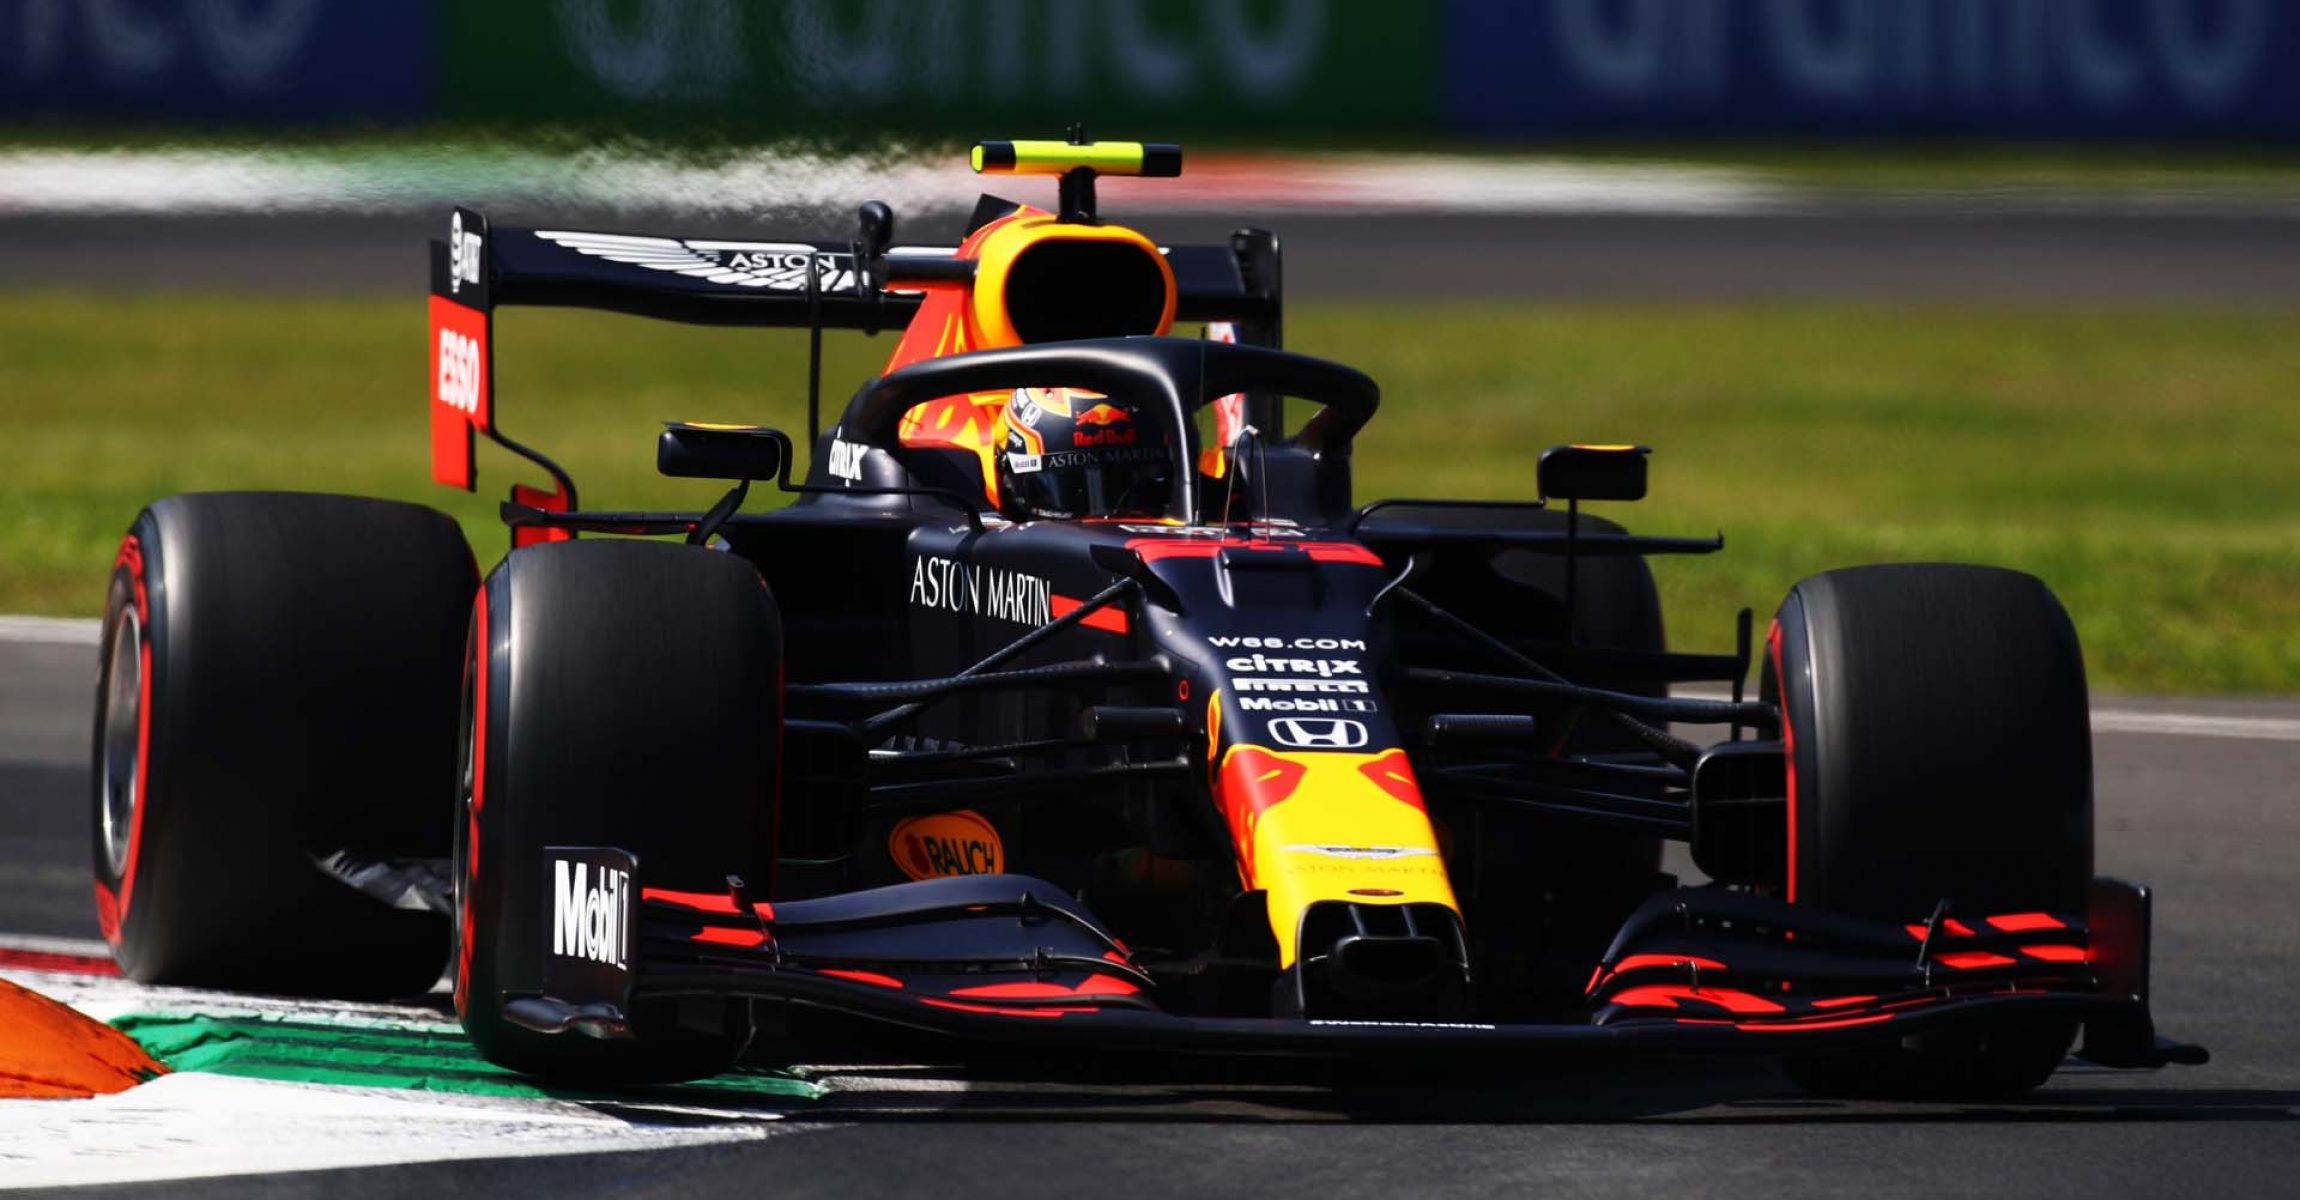 MONZA, ITALY - SEPTEMBER 04: Alexander Albon of Thailand driving the (23) Aston Martin Red Bull Racing RB16 on track during practice for the F1 Grand Prix of Italy at Autodromo di Monza on September 04, 2020 in Monza, Italy. (Photo by Mark Thompson/Getty Images,)